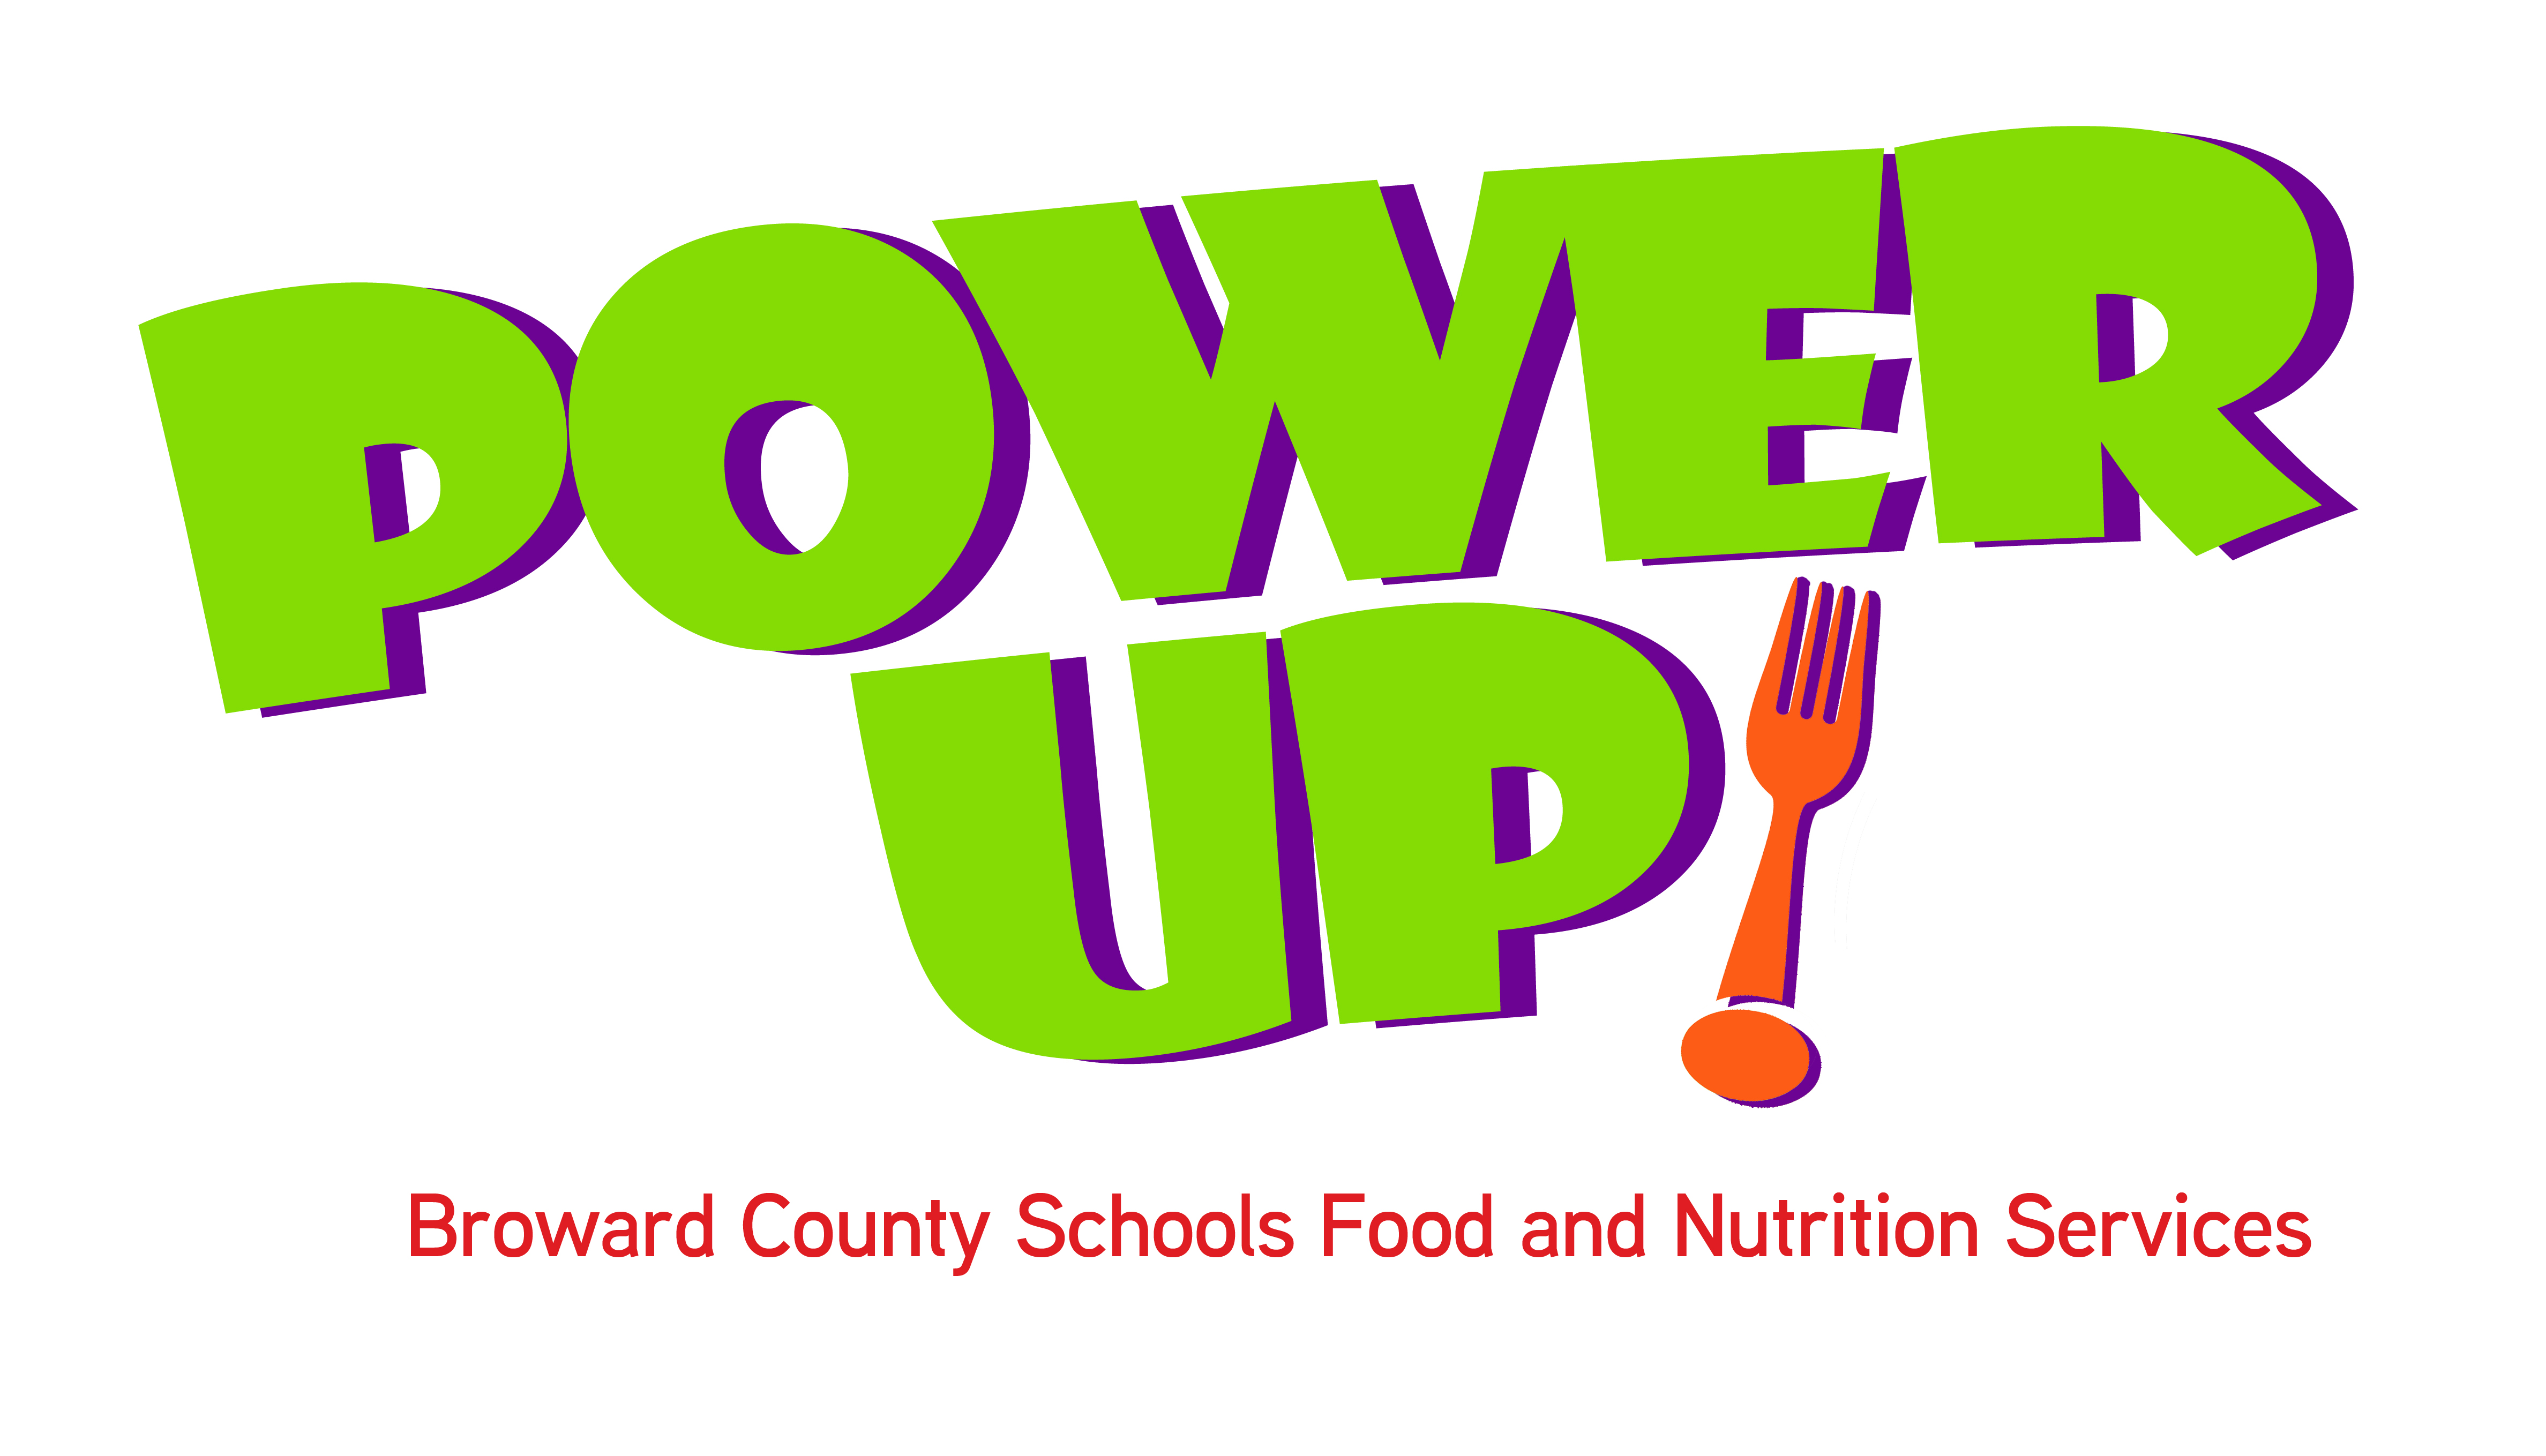 power up froward county public schools food and nutrition program